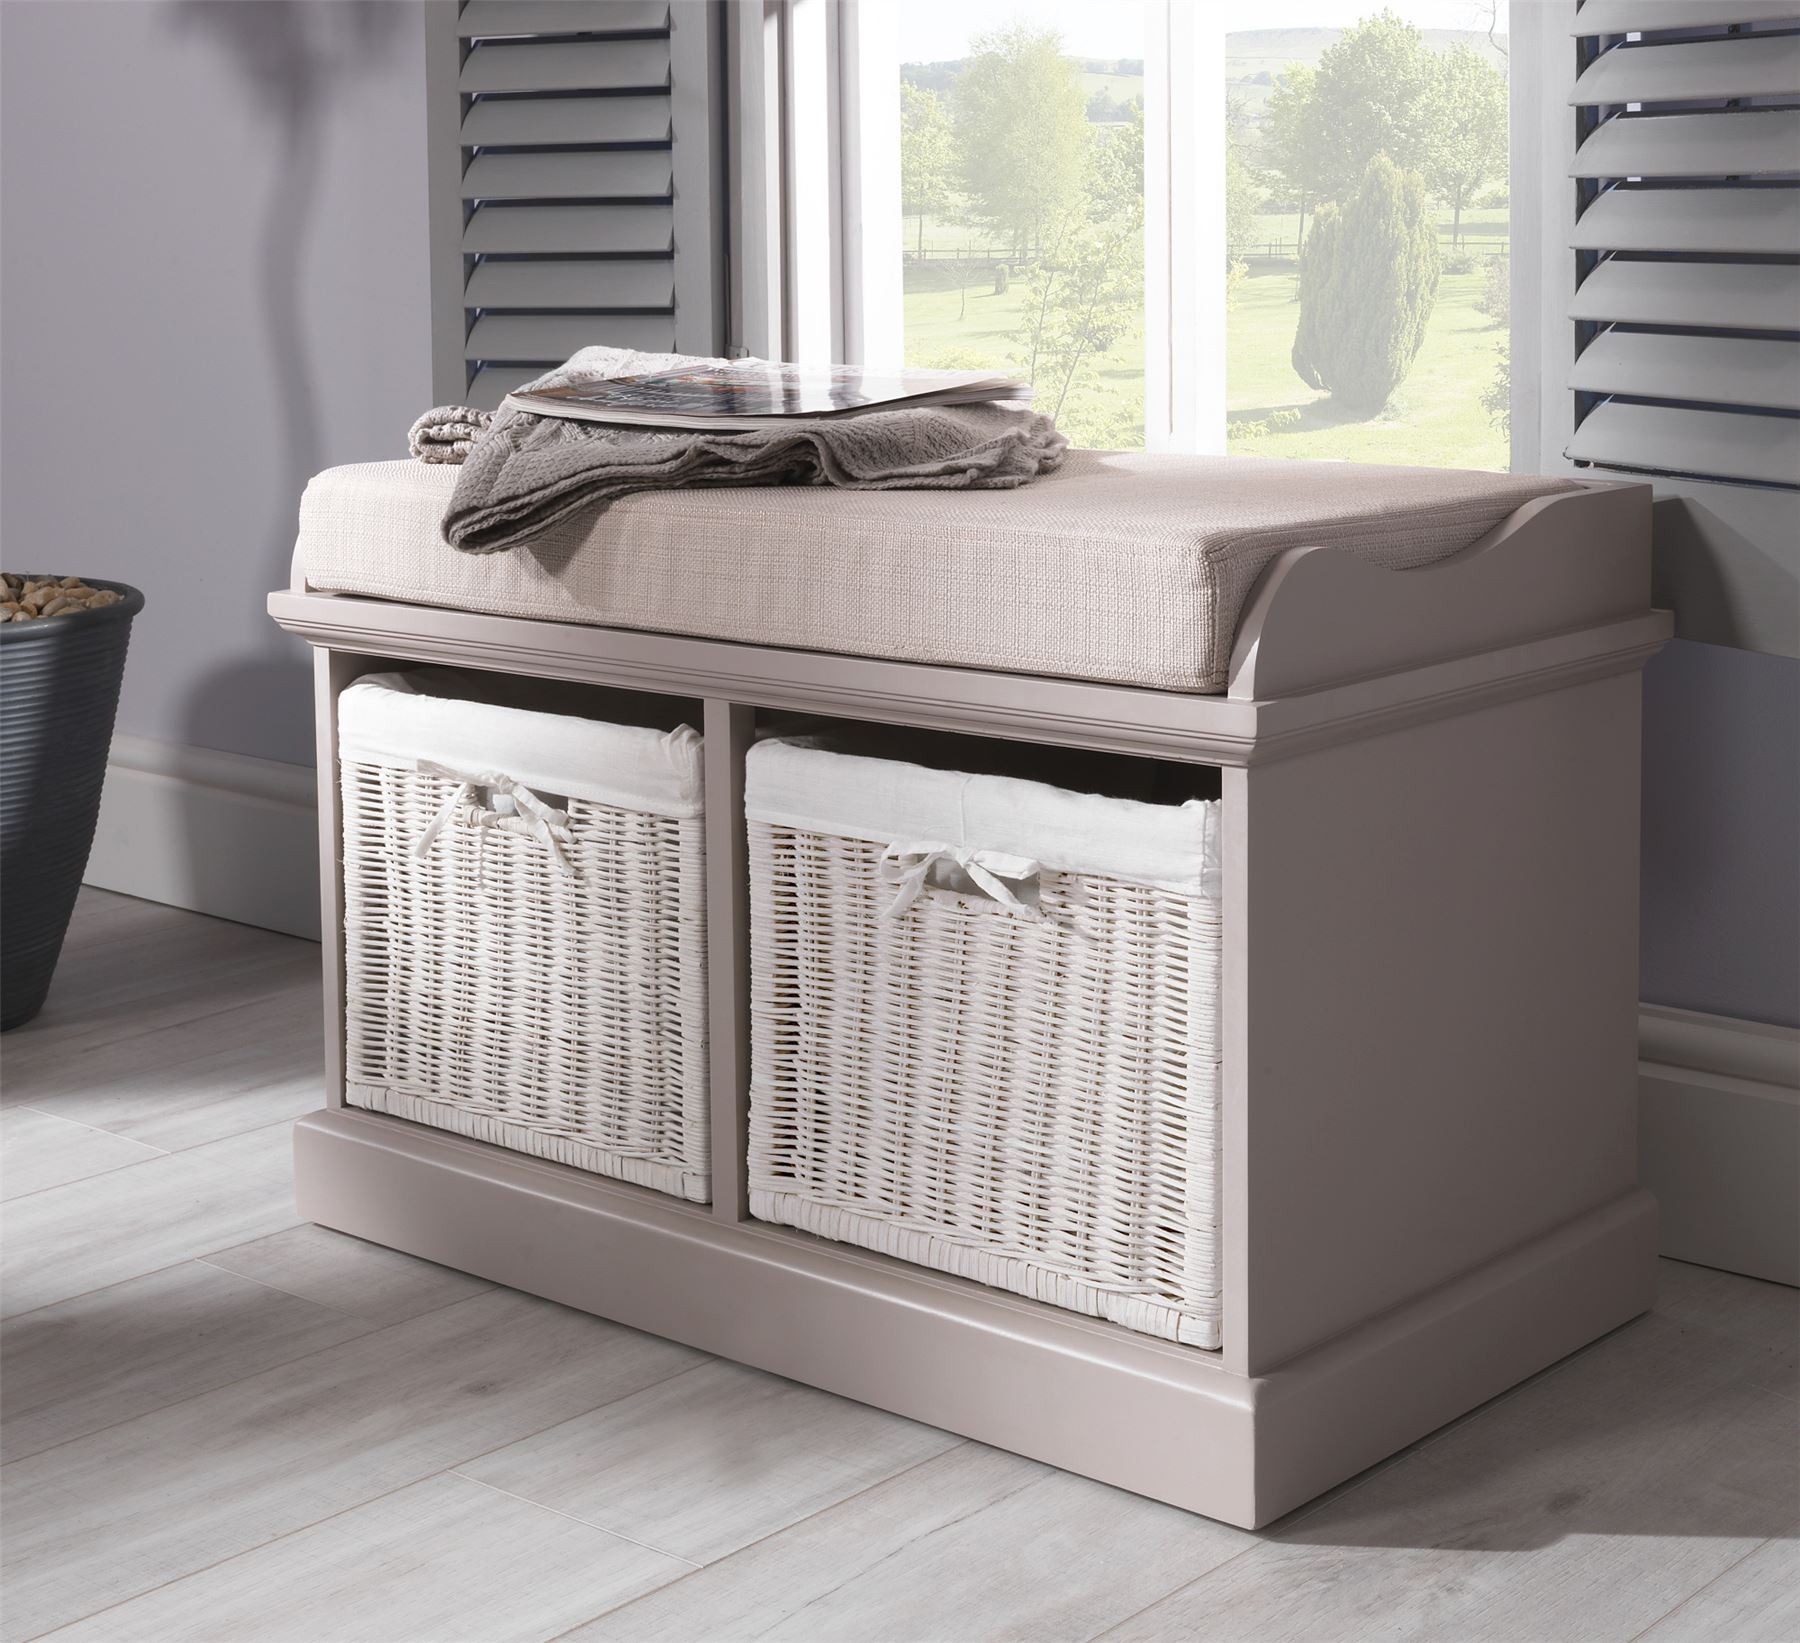 Tetbury bench with 2 white baskets hallway storage bench with cushion 4 colours ebay Storage bench cushion